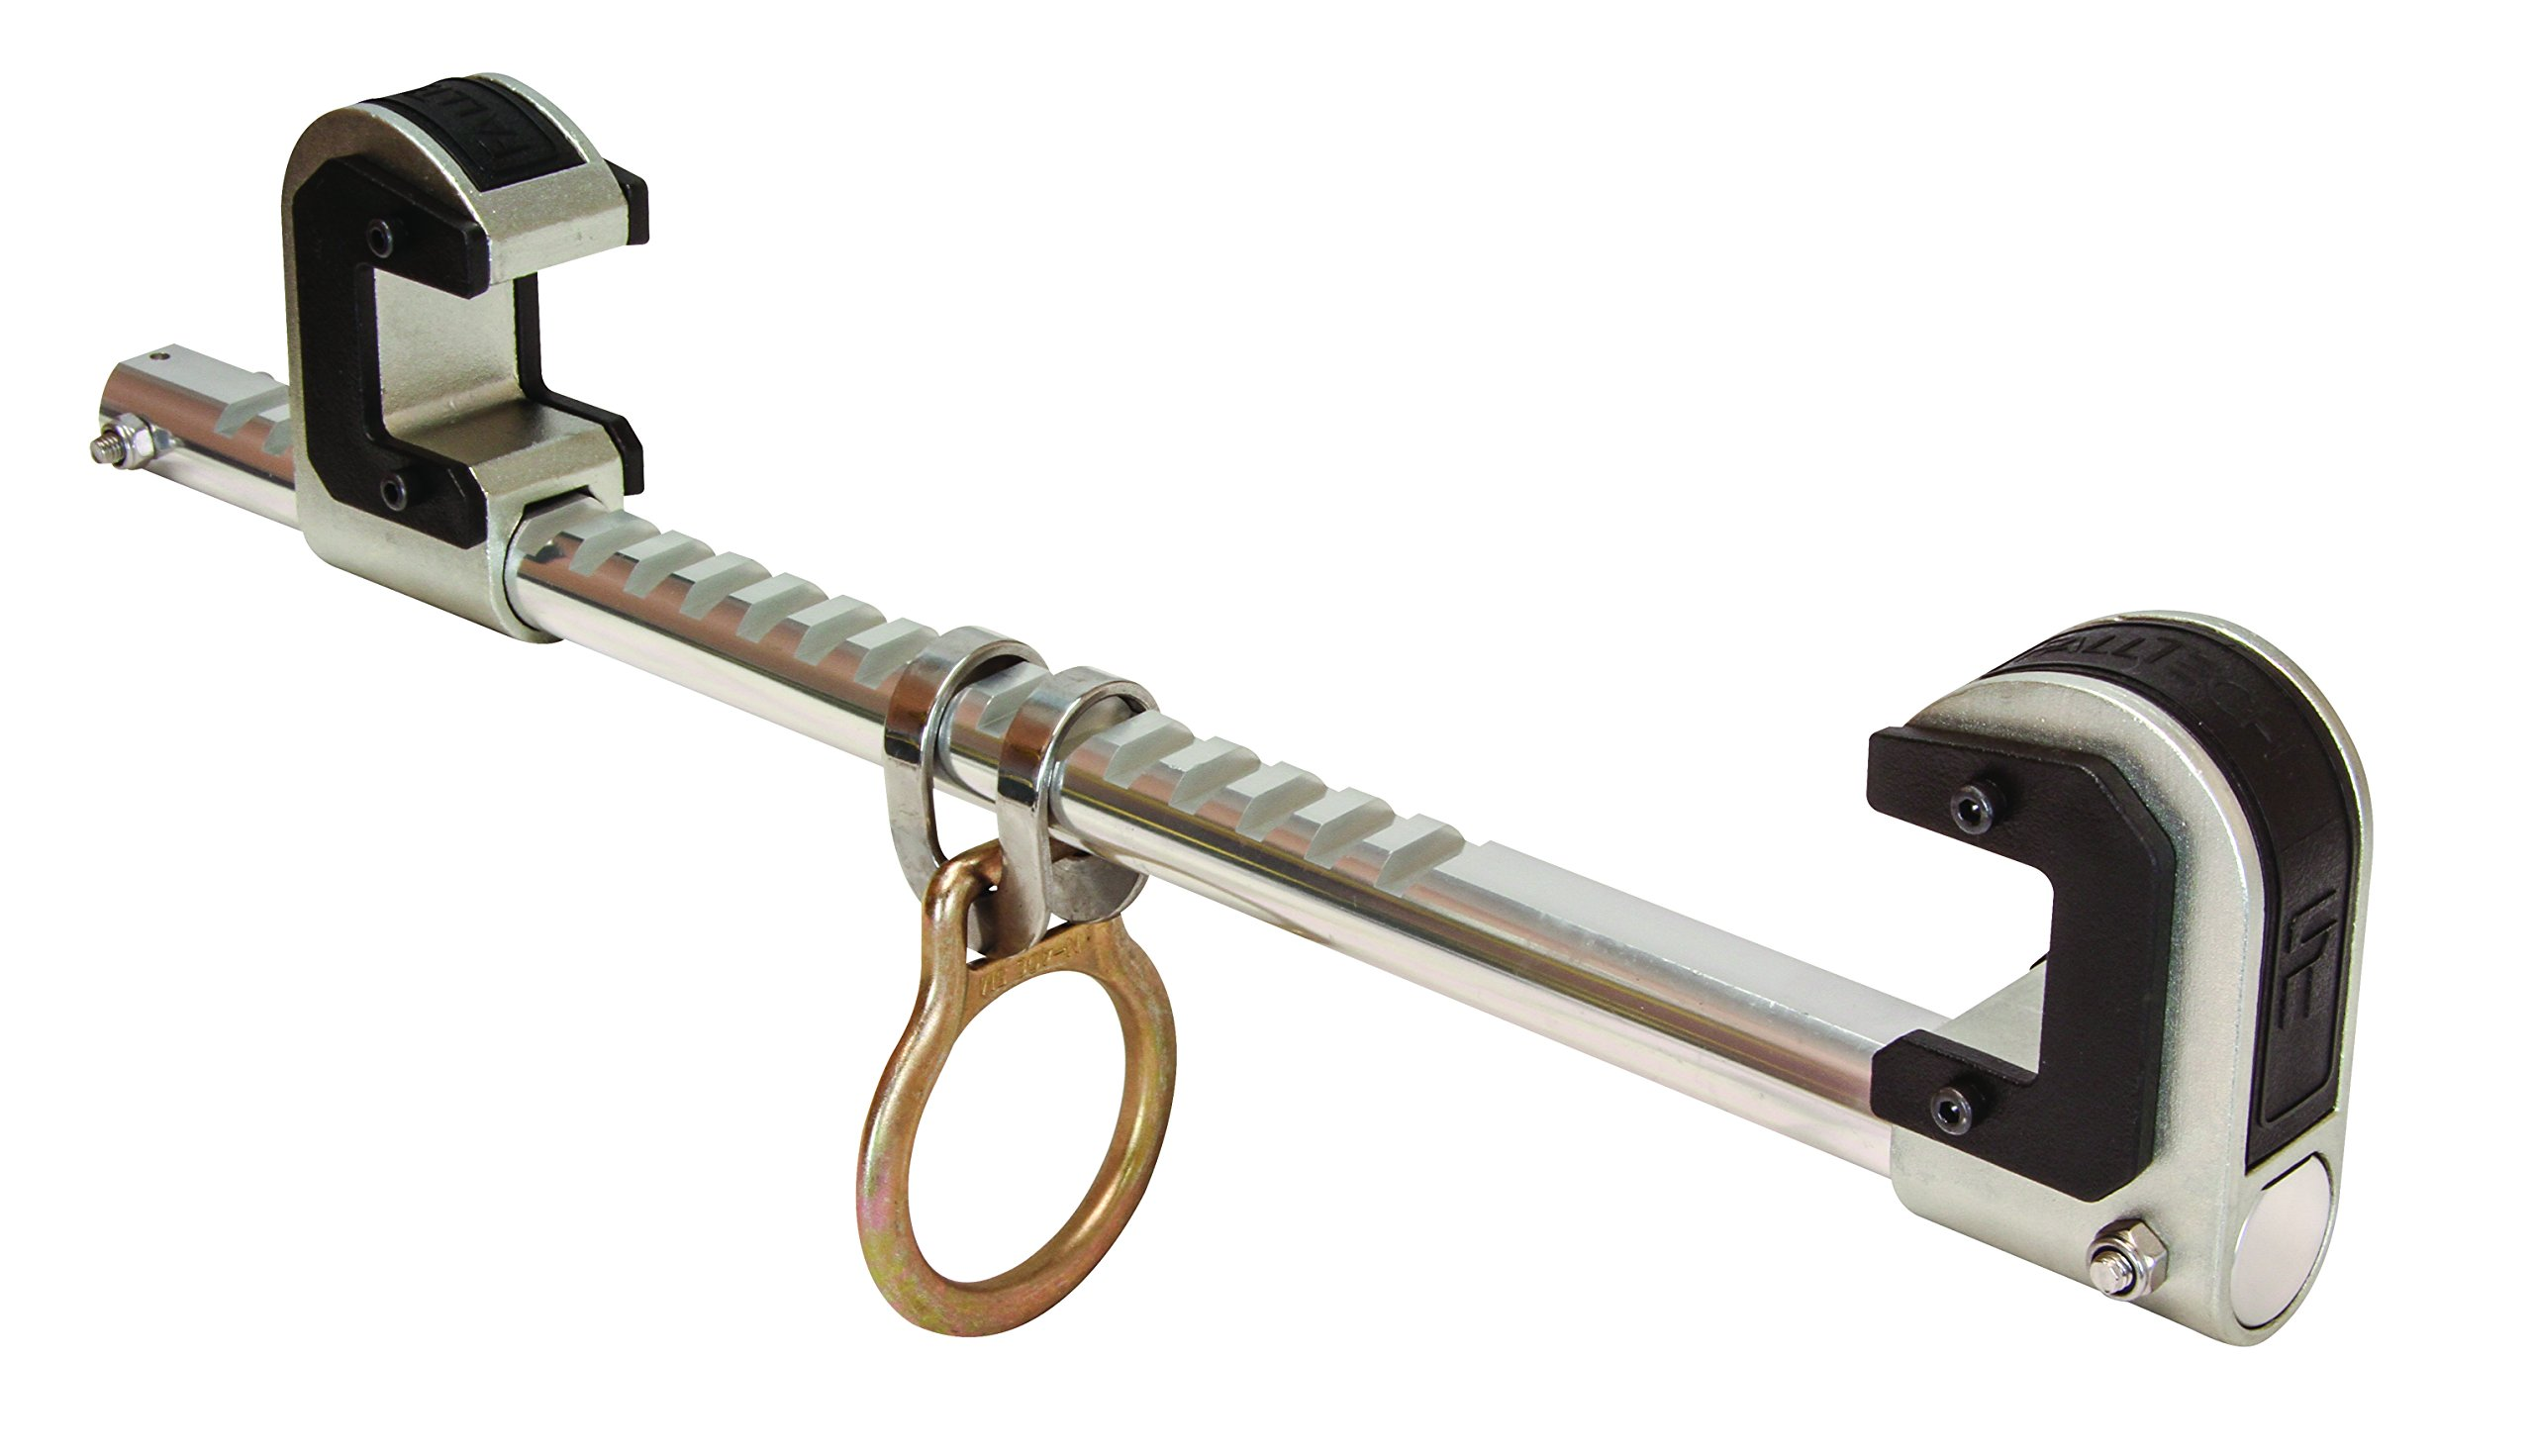 FallTech 7531 Trailing Beam Clamp - Single Ratcheting, Machined Aluminum Bar, Steel Jaws with Slider Pads fits 4'' to 12'' Flange Width, Natural by FallTech (Image #1)